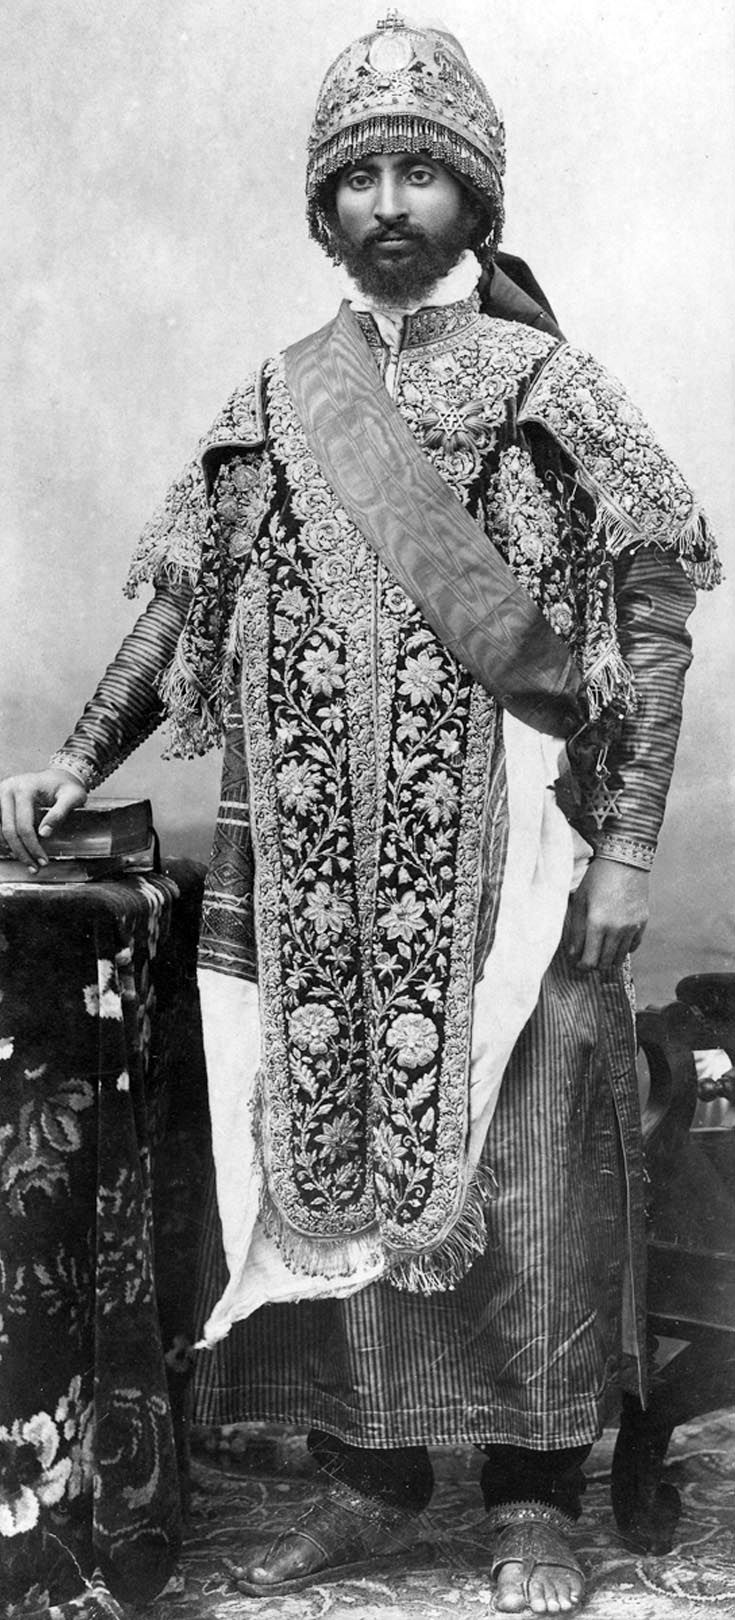 Africa | Portrait of Ras Tafari, the Regent of Abyssinia (and later the Emperor Haile Selassie), standing, dressed in ceremonial robes and wearing a crown.  Addis Ababa, Ethiopia.  1971 | ©Wilfred Gilbert Thesiger / Pitt River Museum